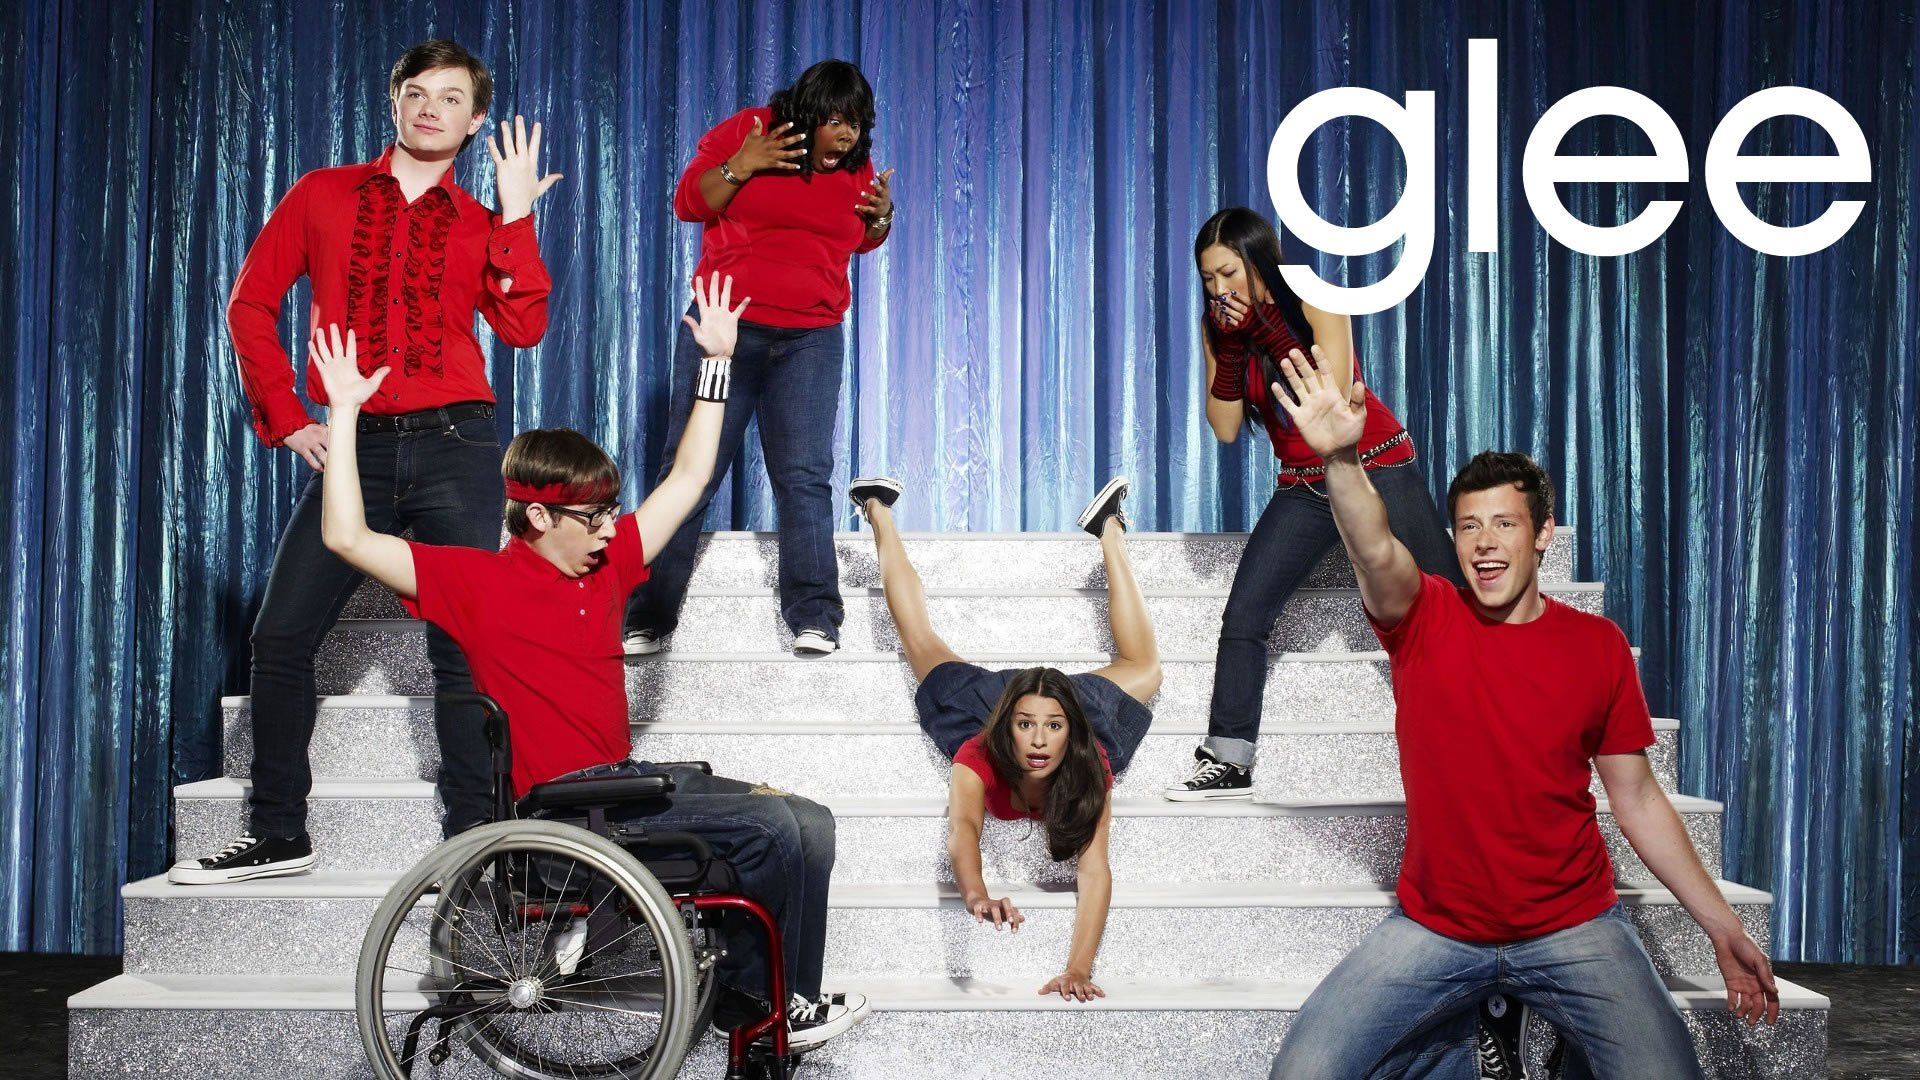 Glee full hd wallpaper and background image 1920x1080 id679970 tv show glee wallpaper voltagebd Image collections